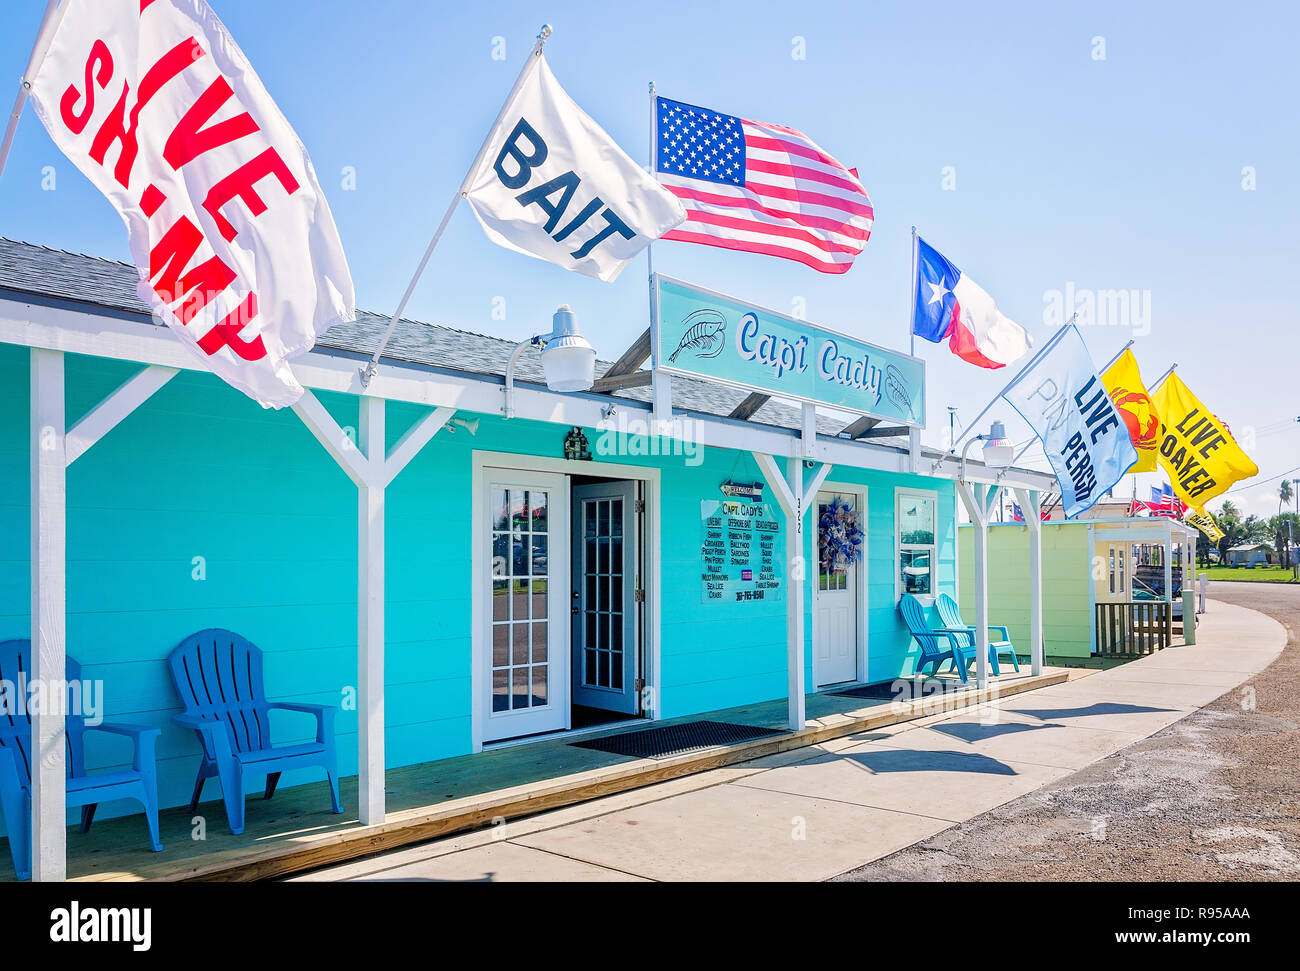 Rockport Texas Stock Photos & Rockport Texas Stock Images - Alamy